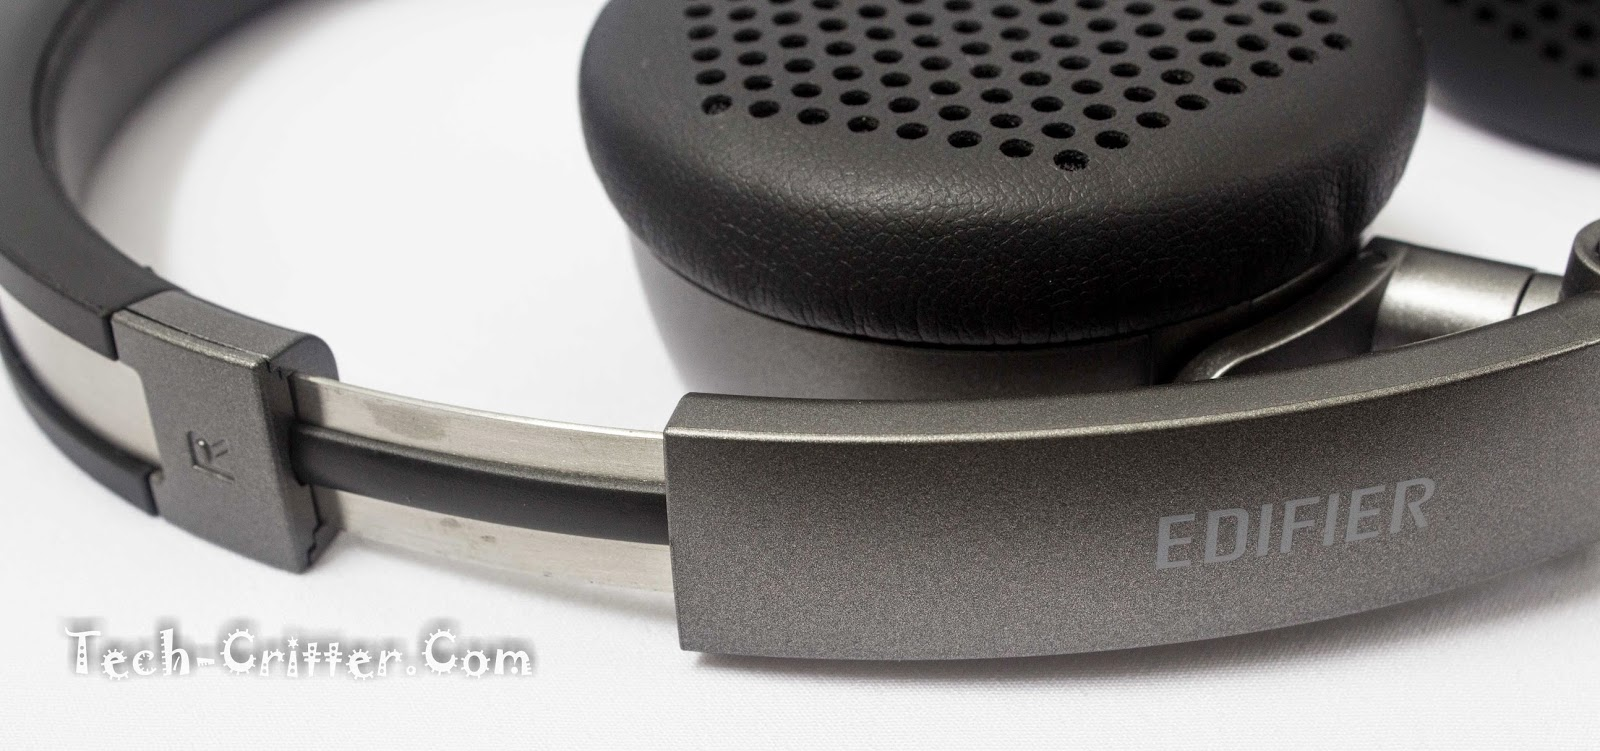 Quick Review: Edifier H690 Stereo Headset 8